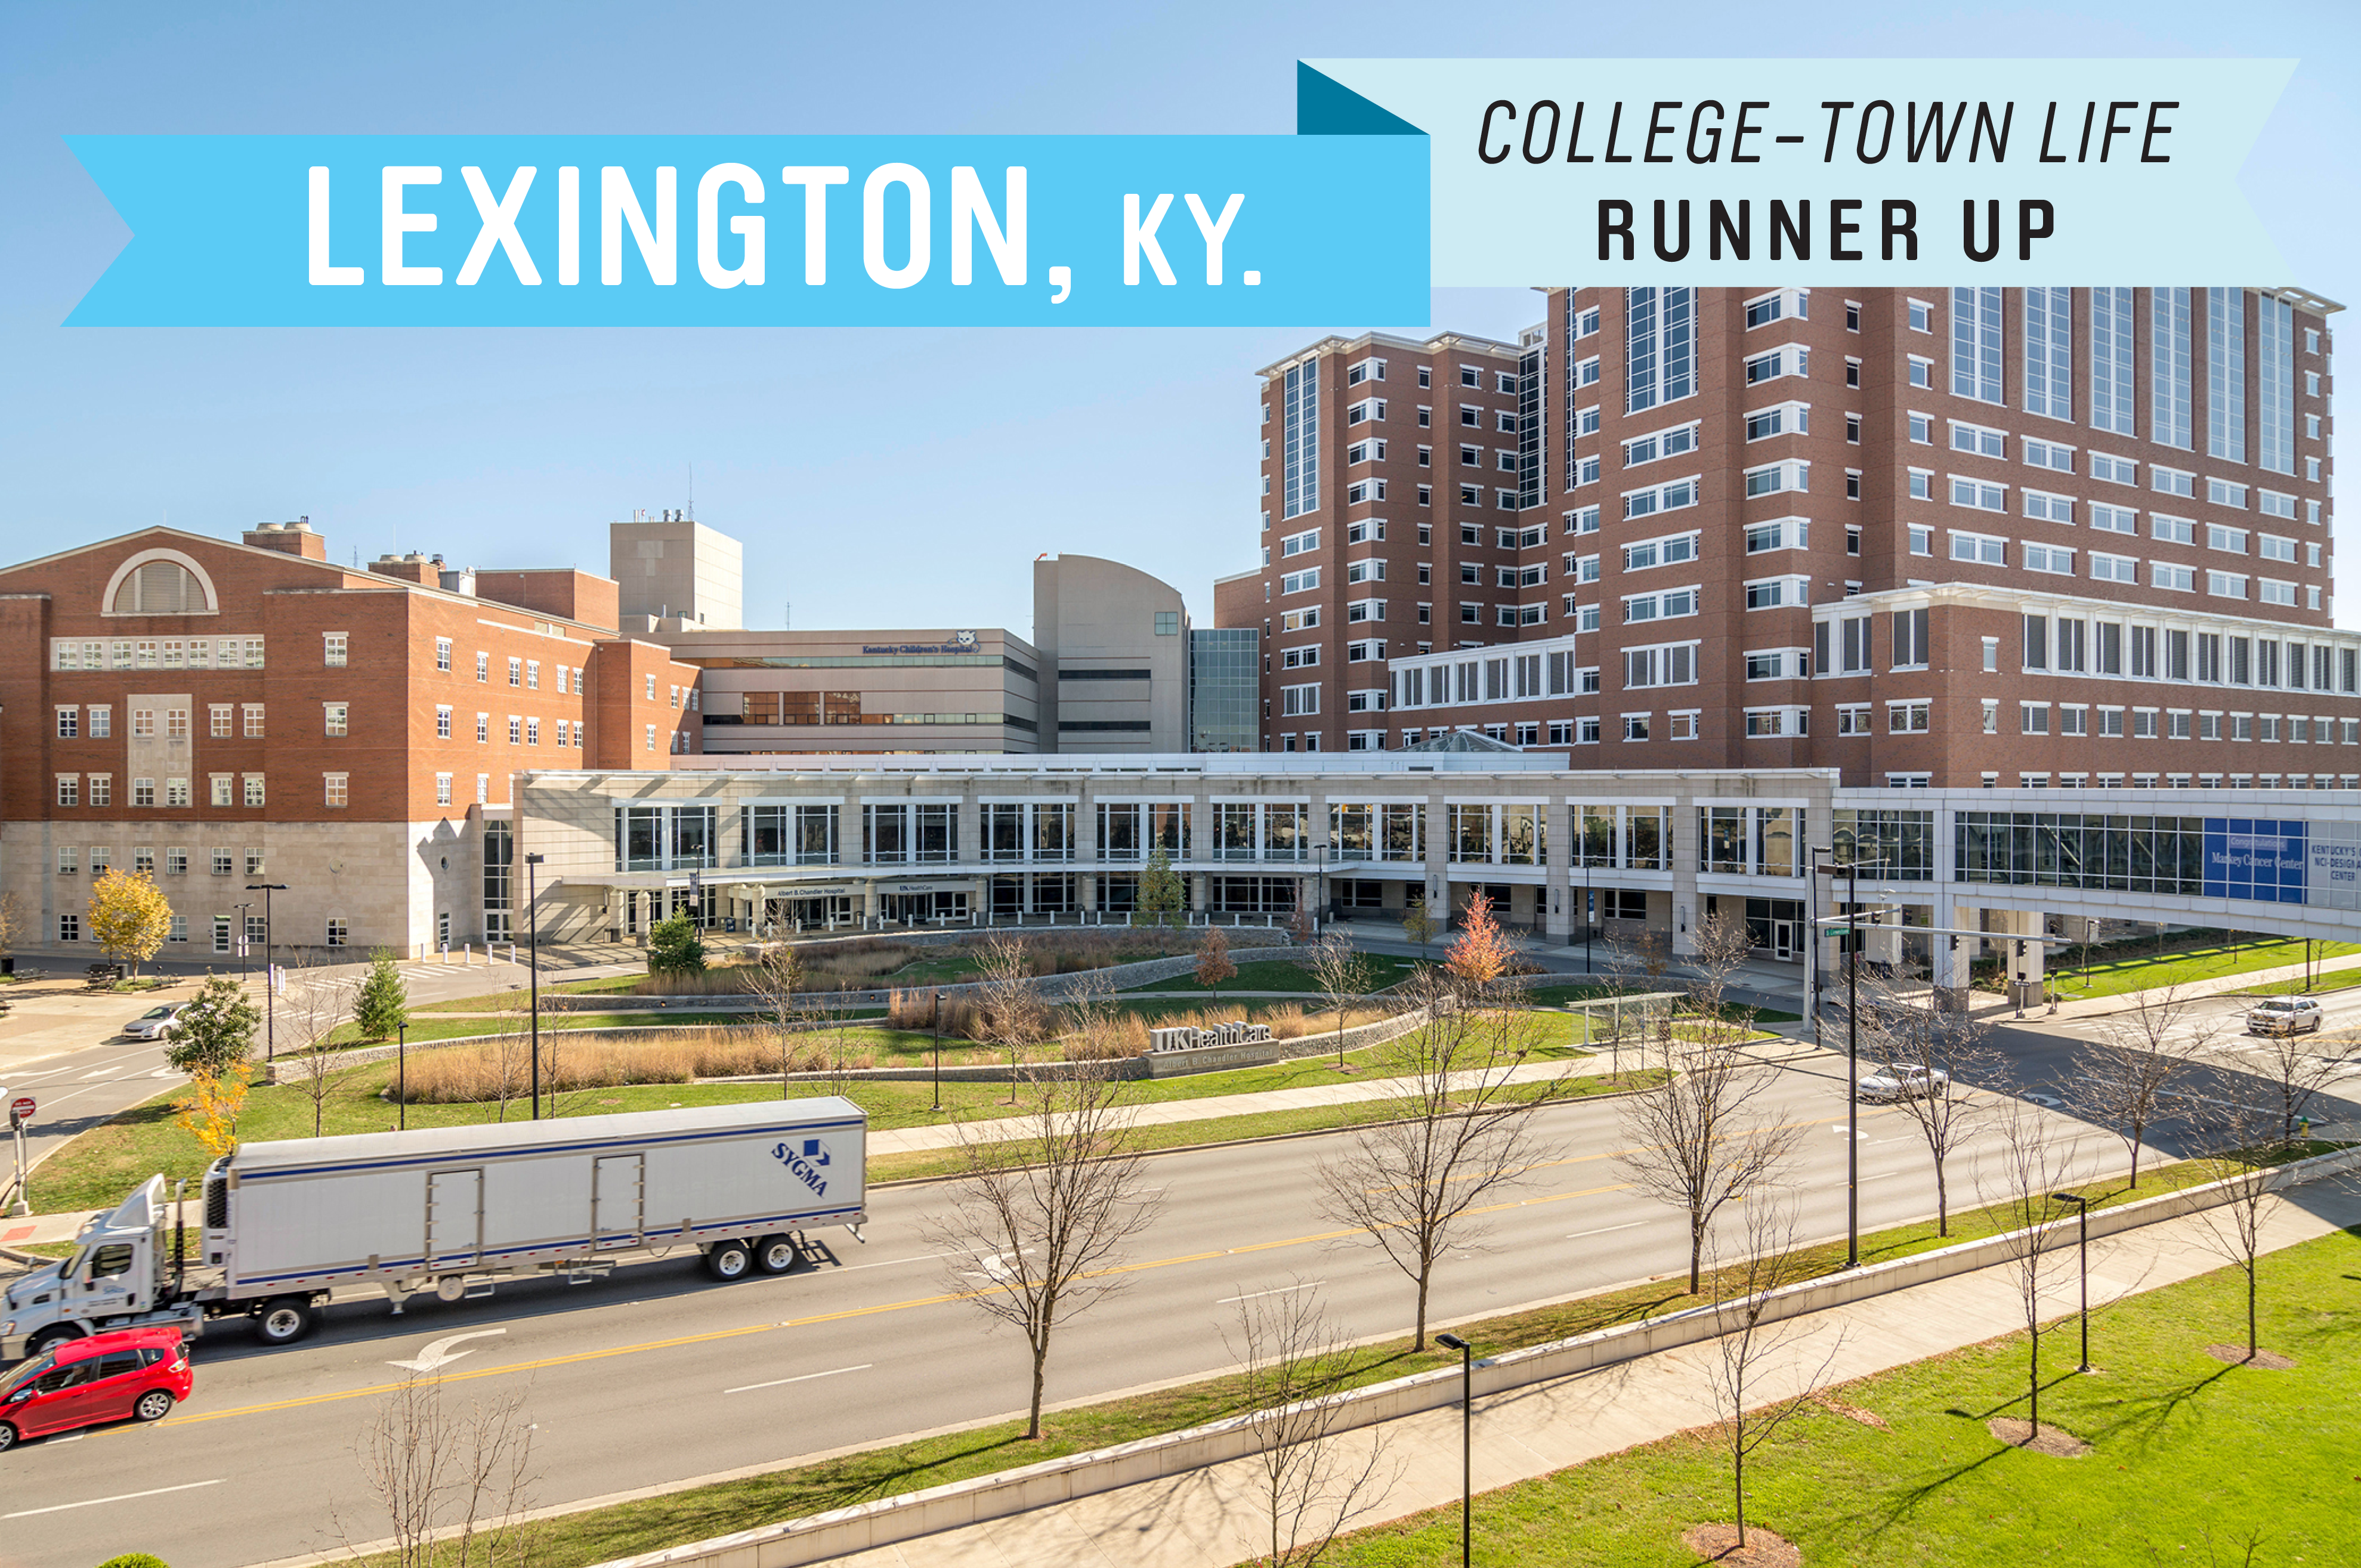 The University of Kentucky offers two free programs to older adults: The Donovan Fellowship, which lets people 65+ take university courses for free; and a life-long learning institute for people 50+ that features classes, seminars and day trips for about $20 each. The median home price: $142,000.